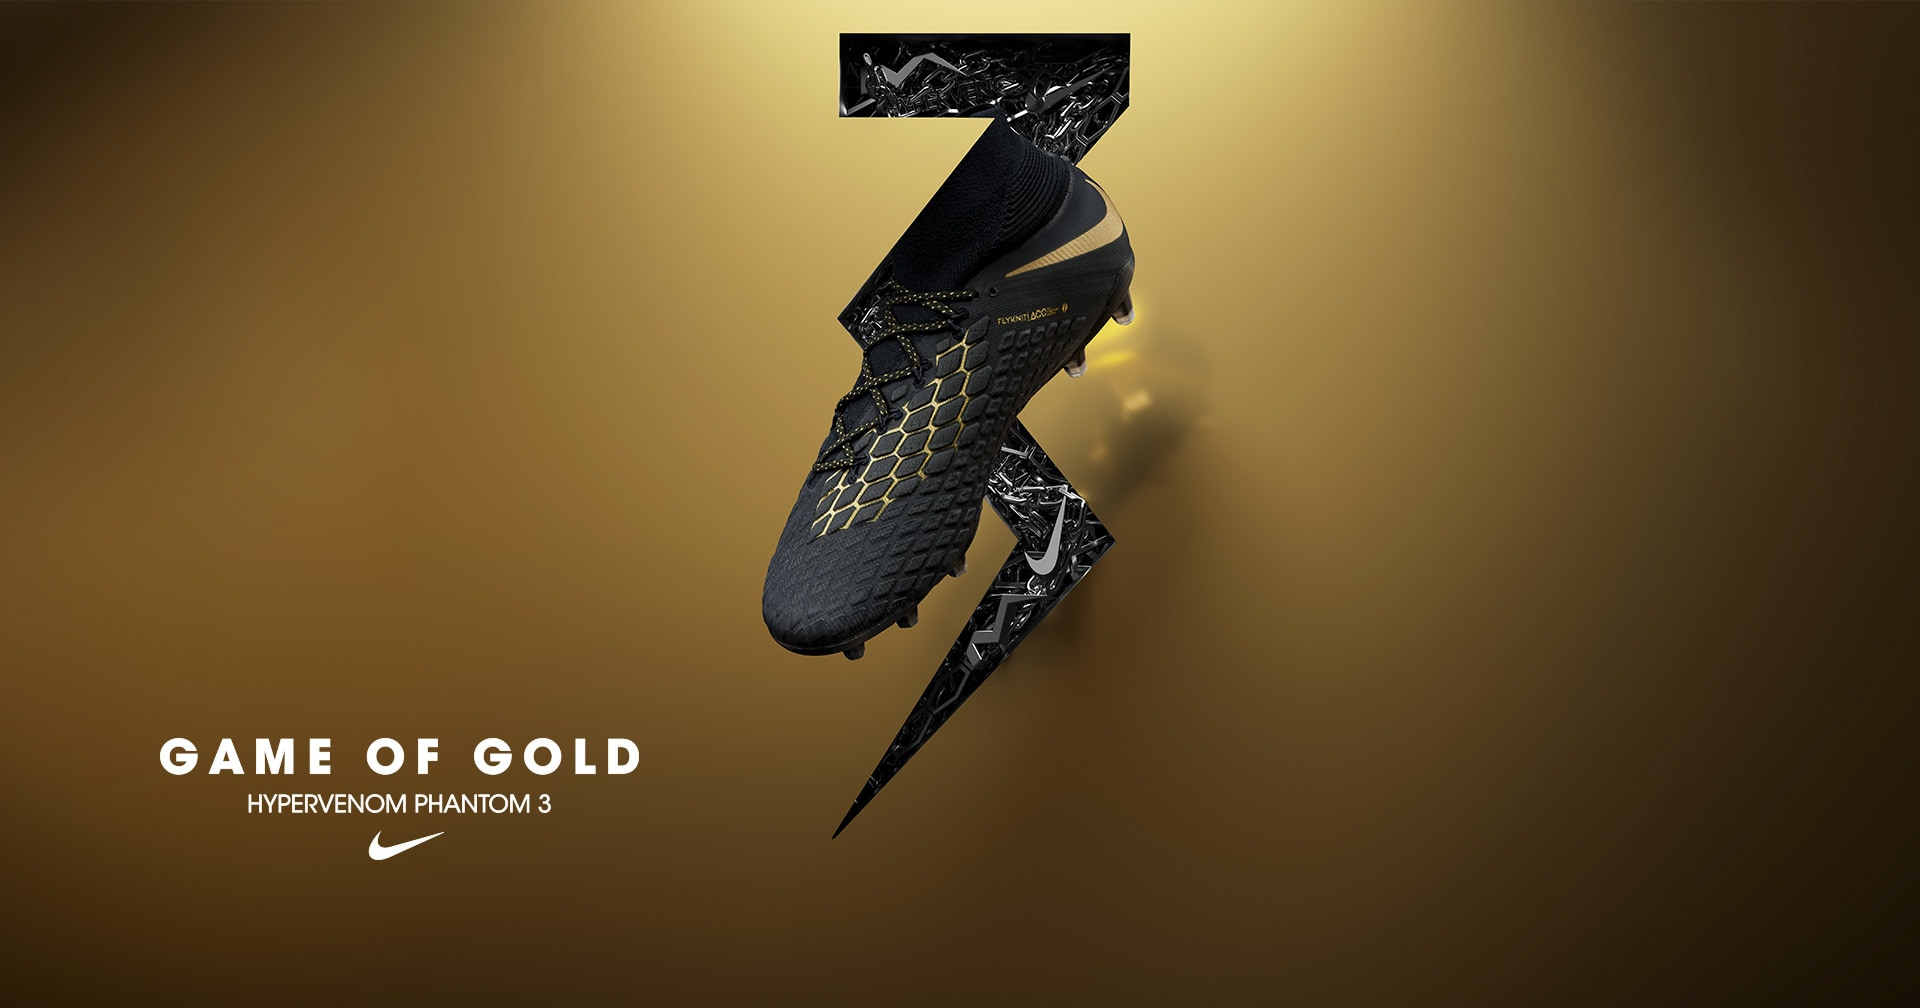 Chaussures Nike Hypervenom Game of GOLD